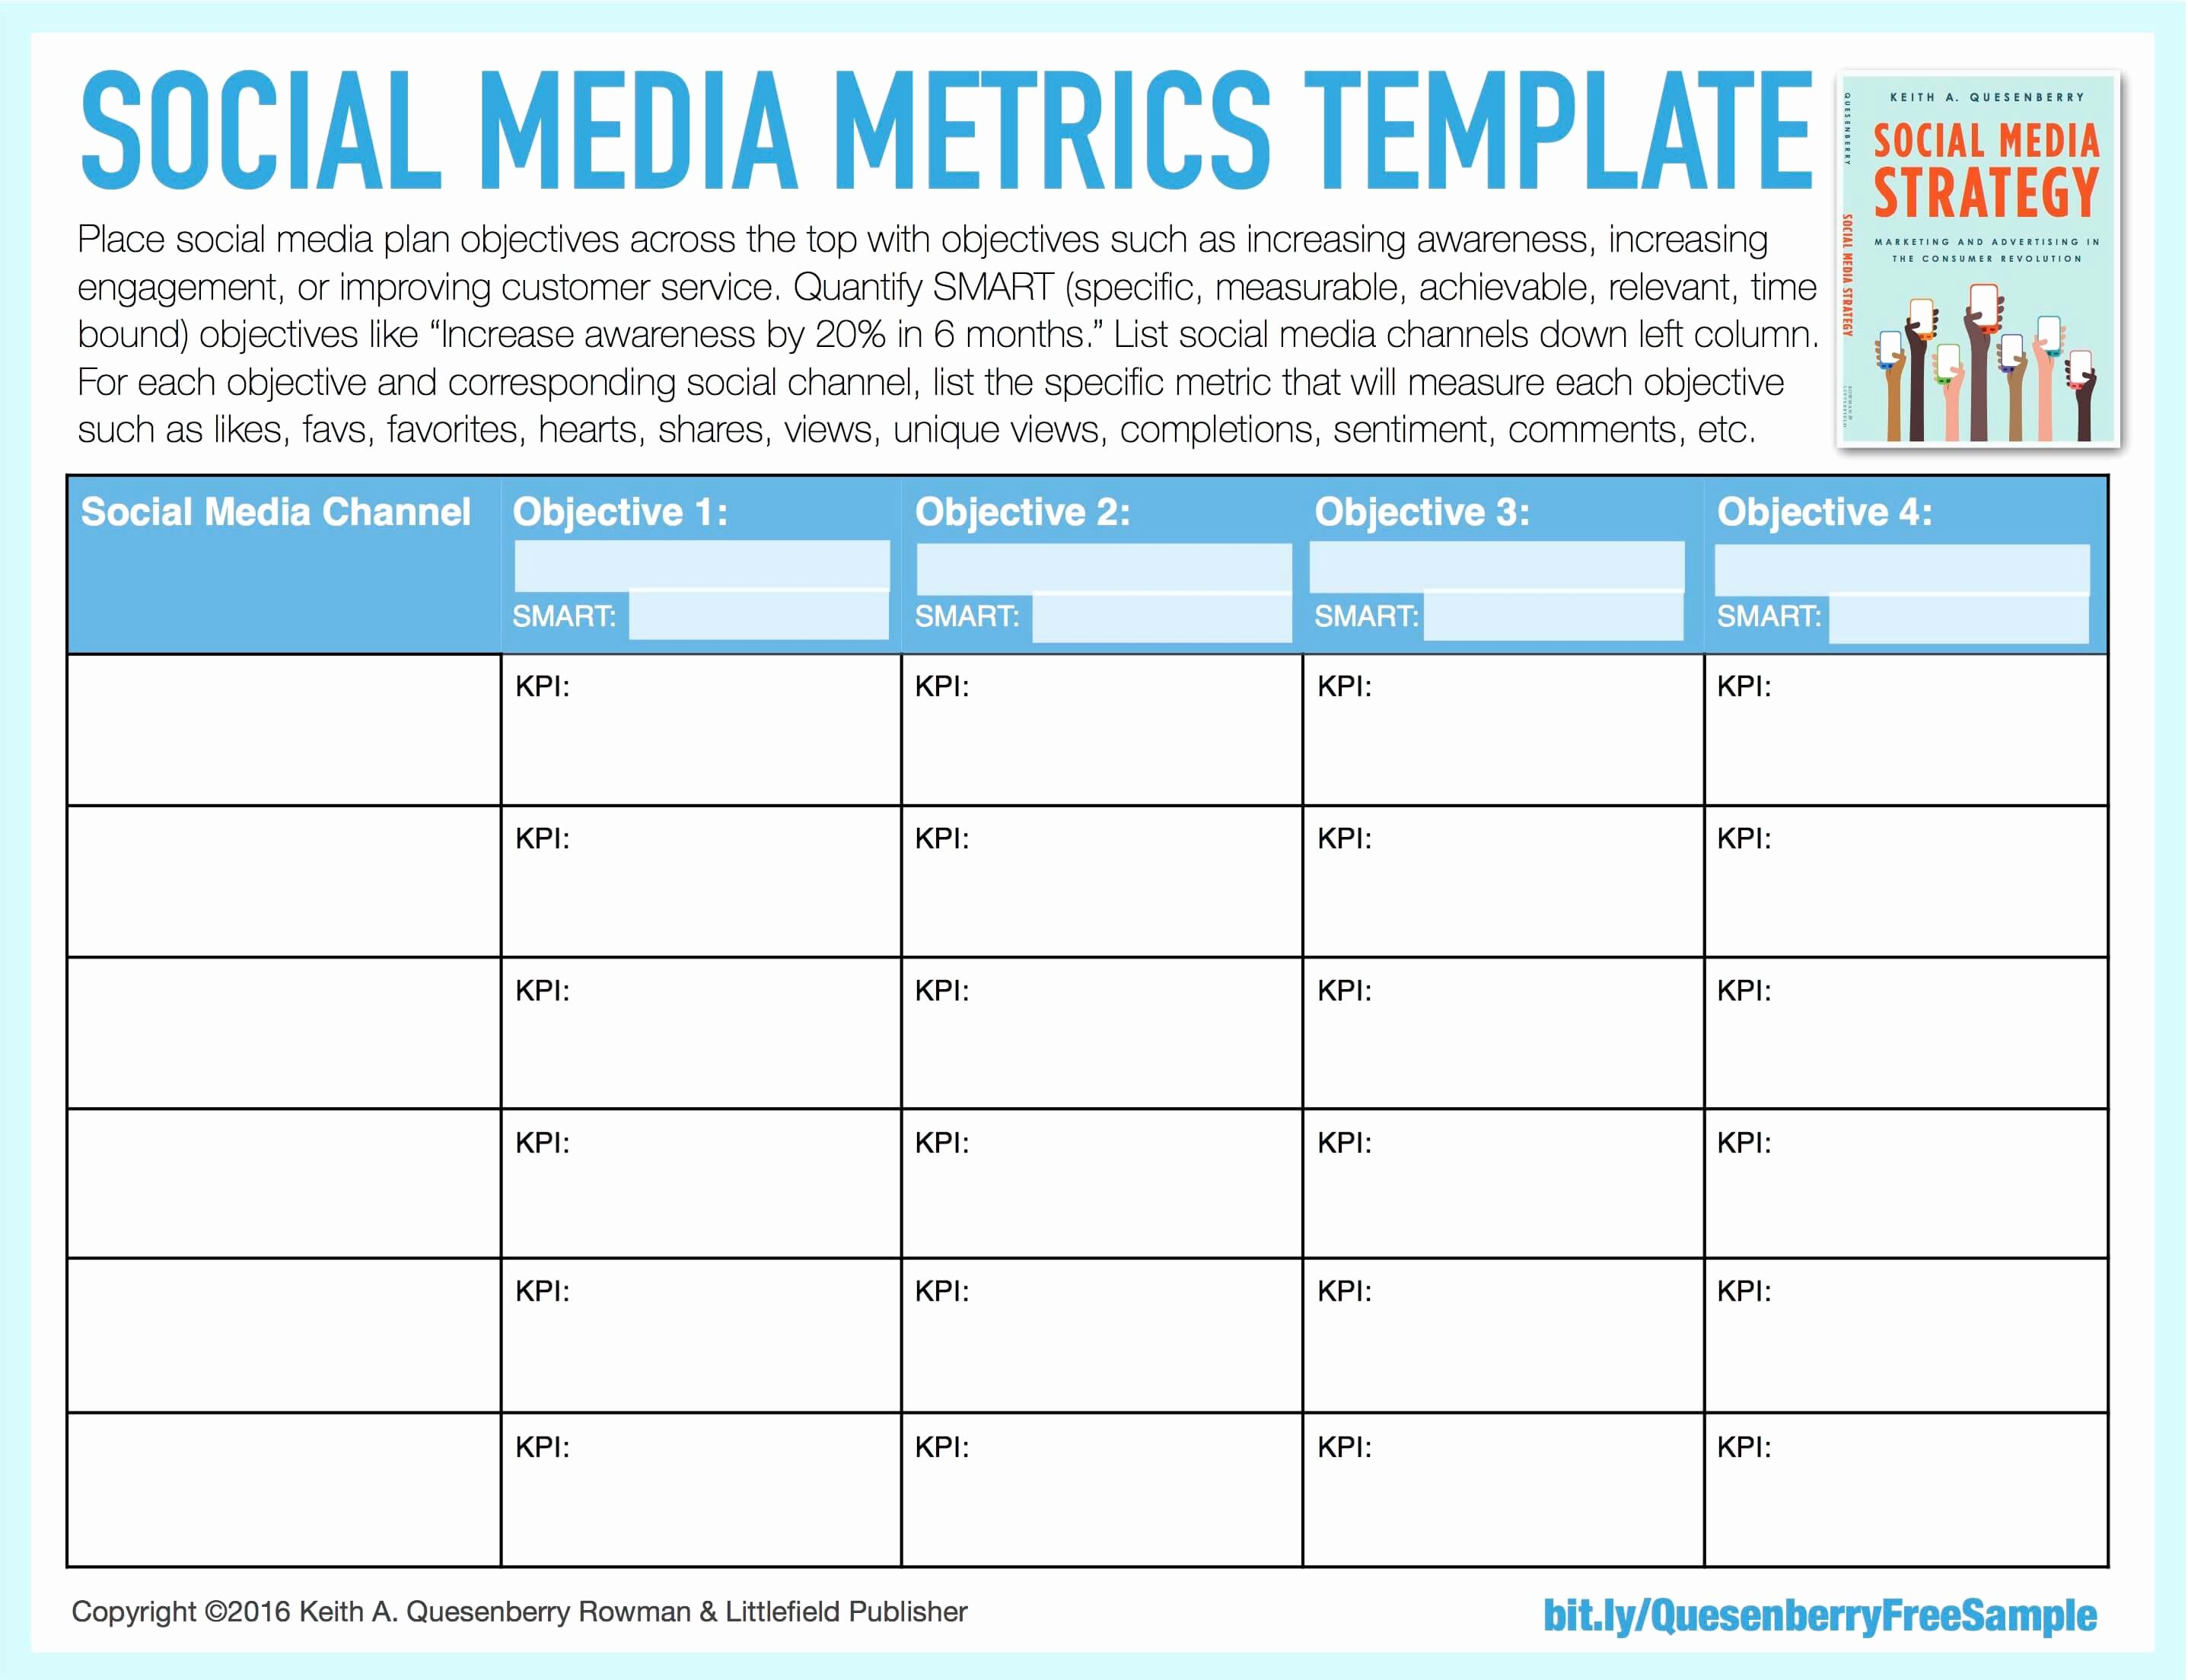 Social Media Templates Keith A Quesenberry